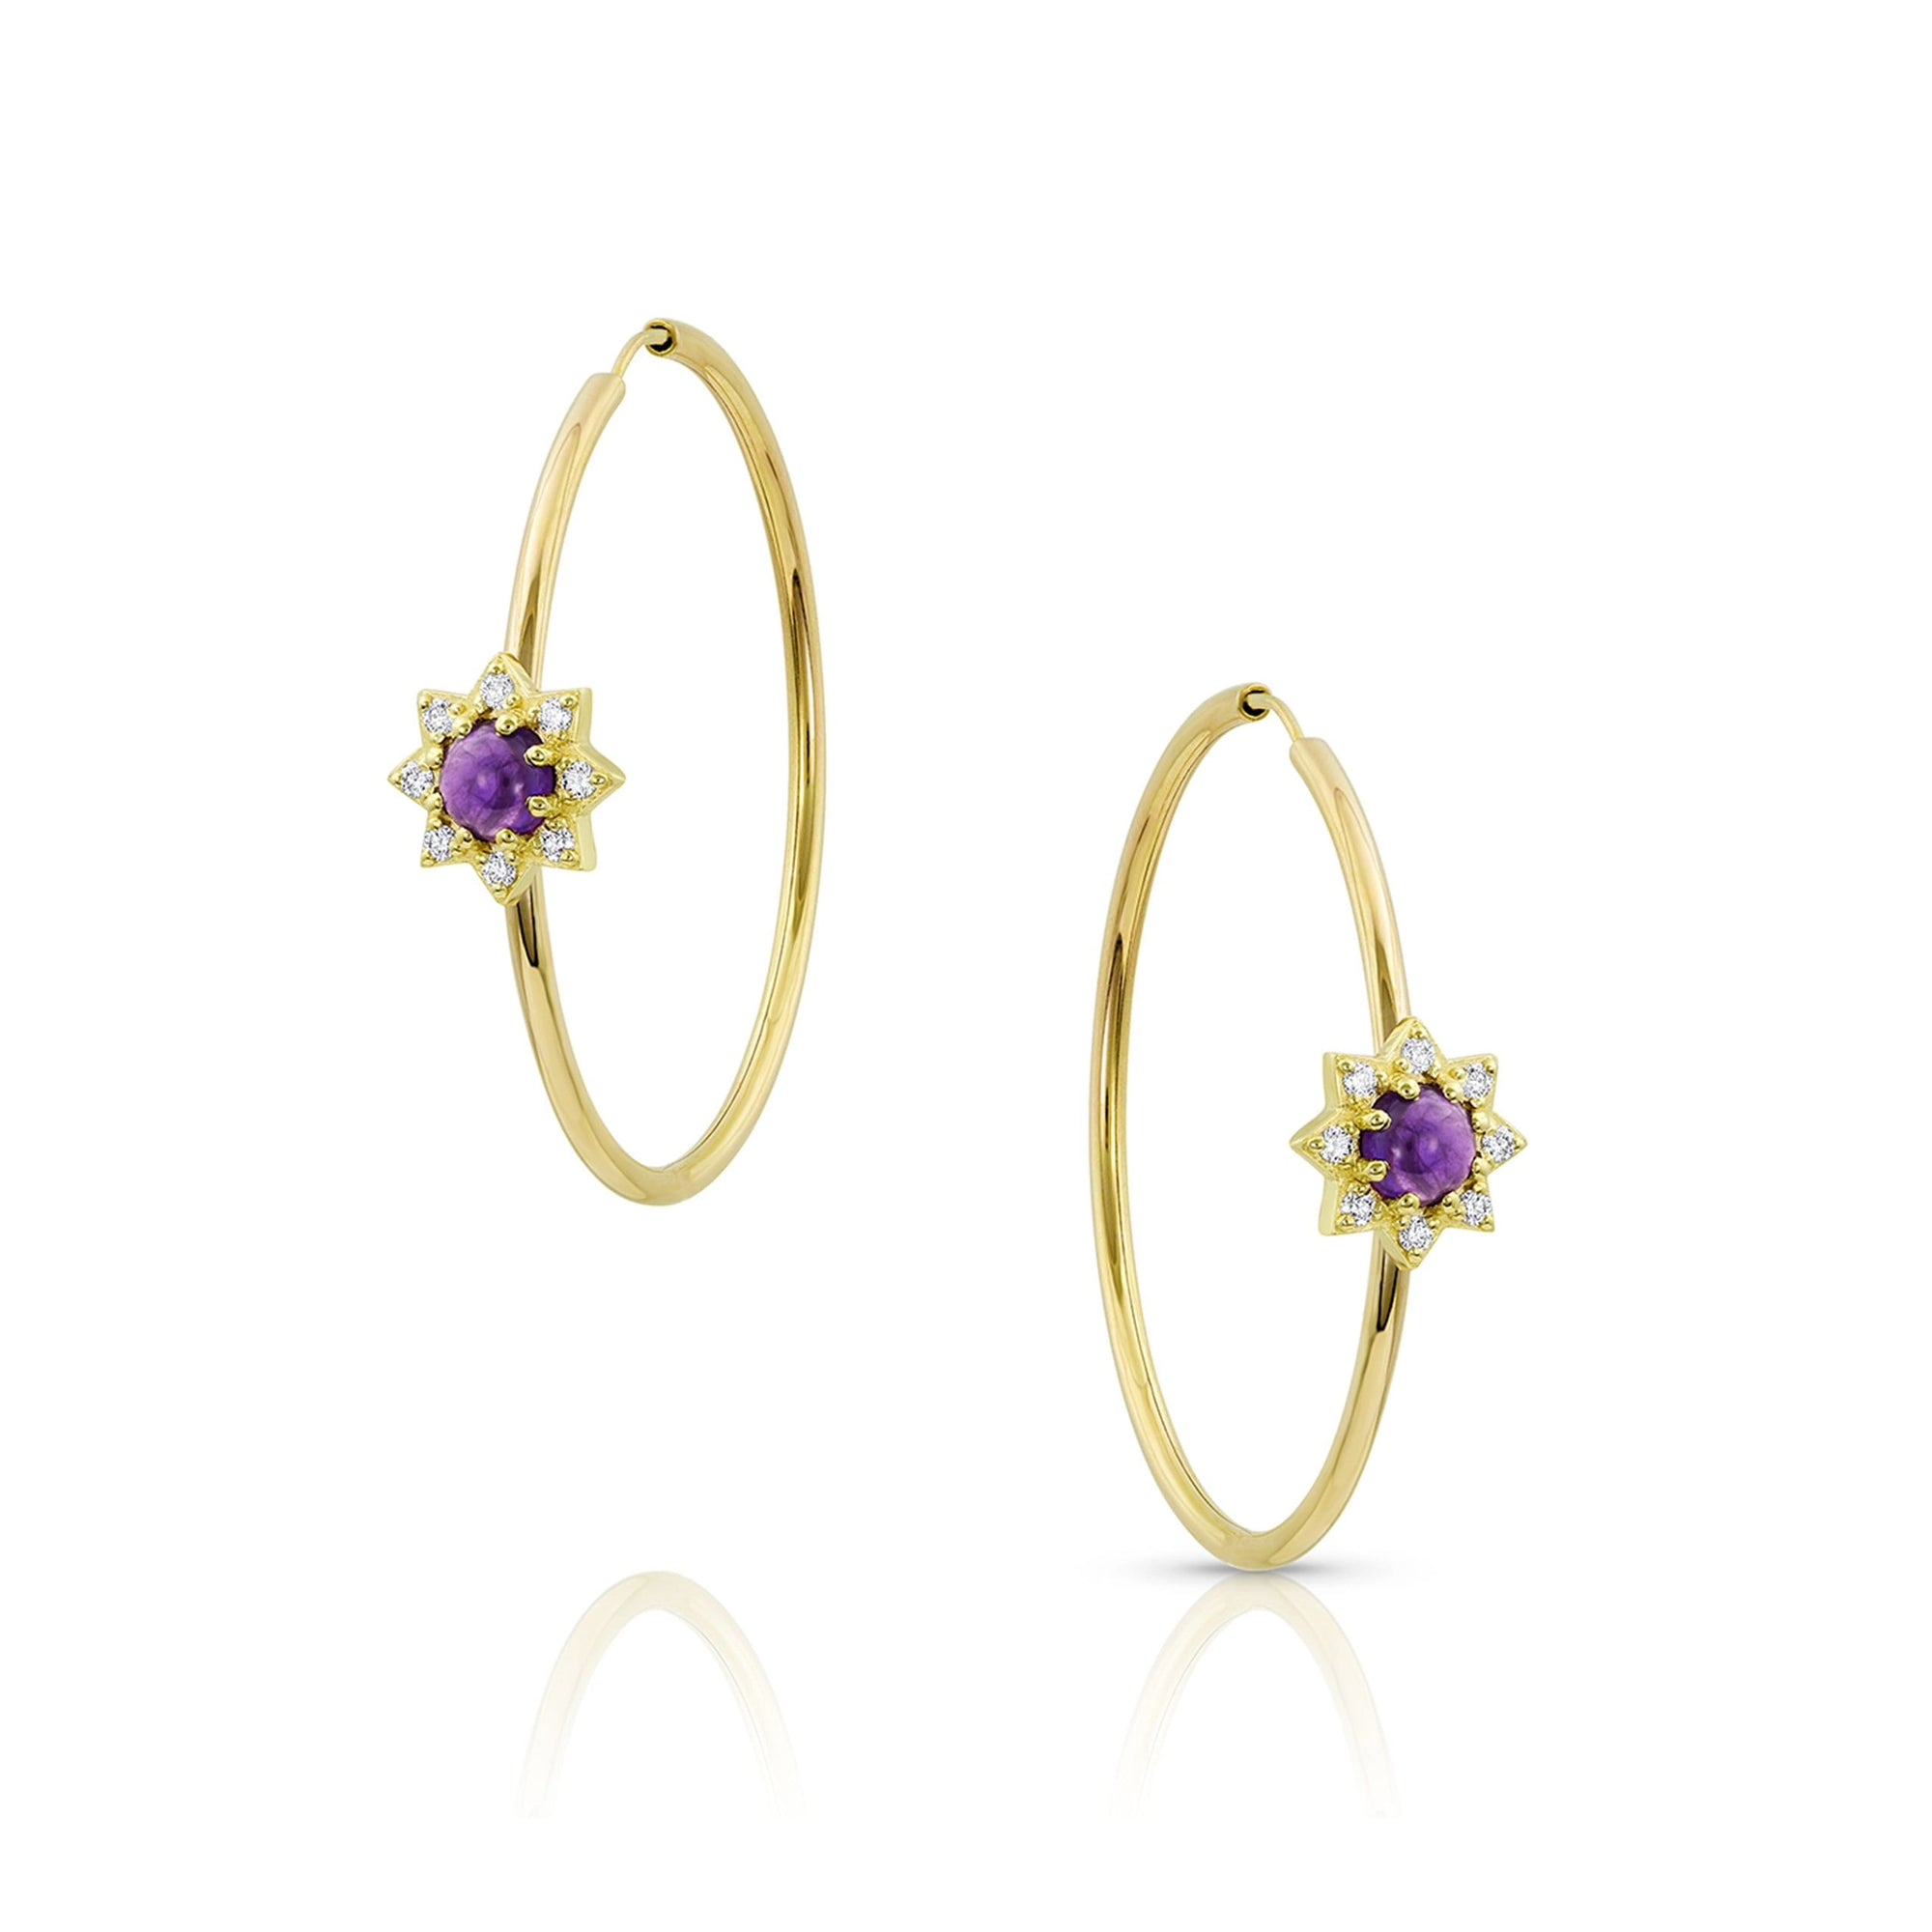 M. Spalten | Starburst Hoop Earrings